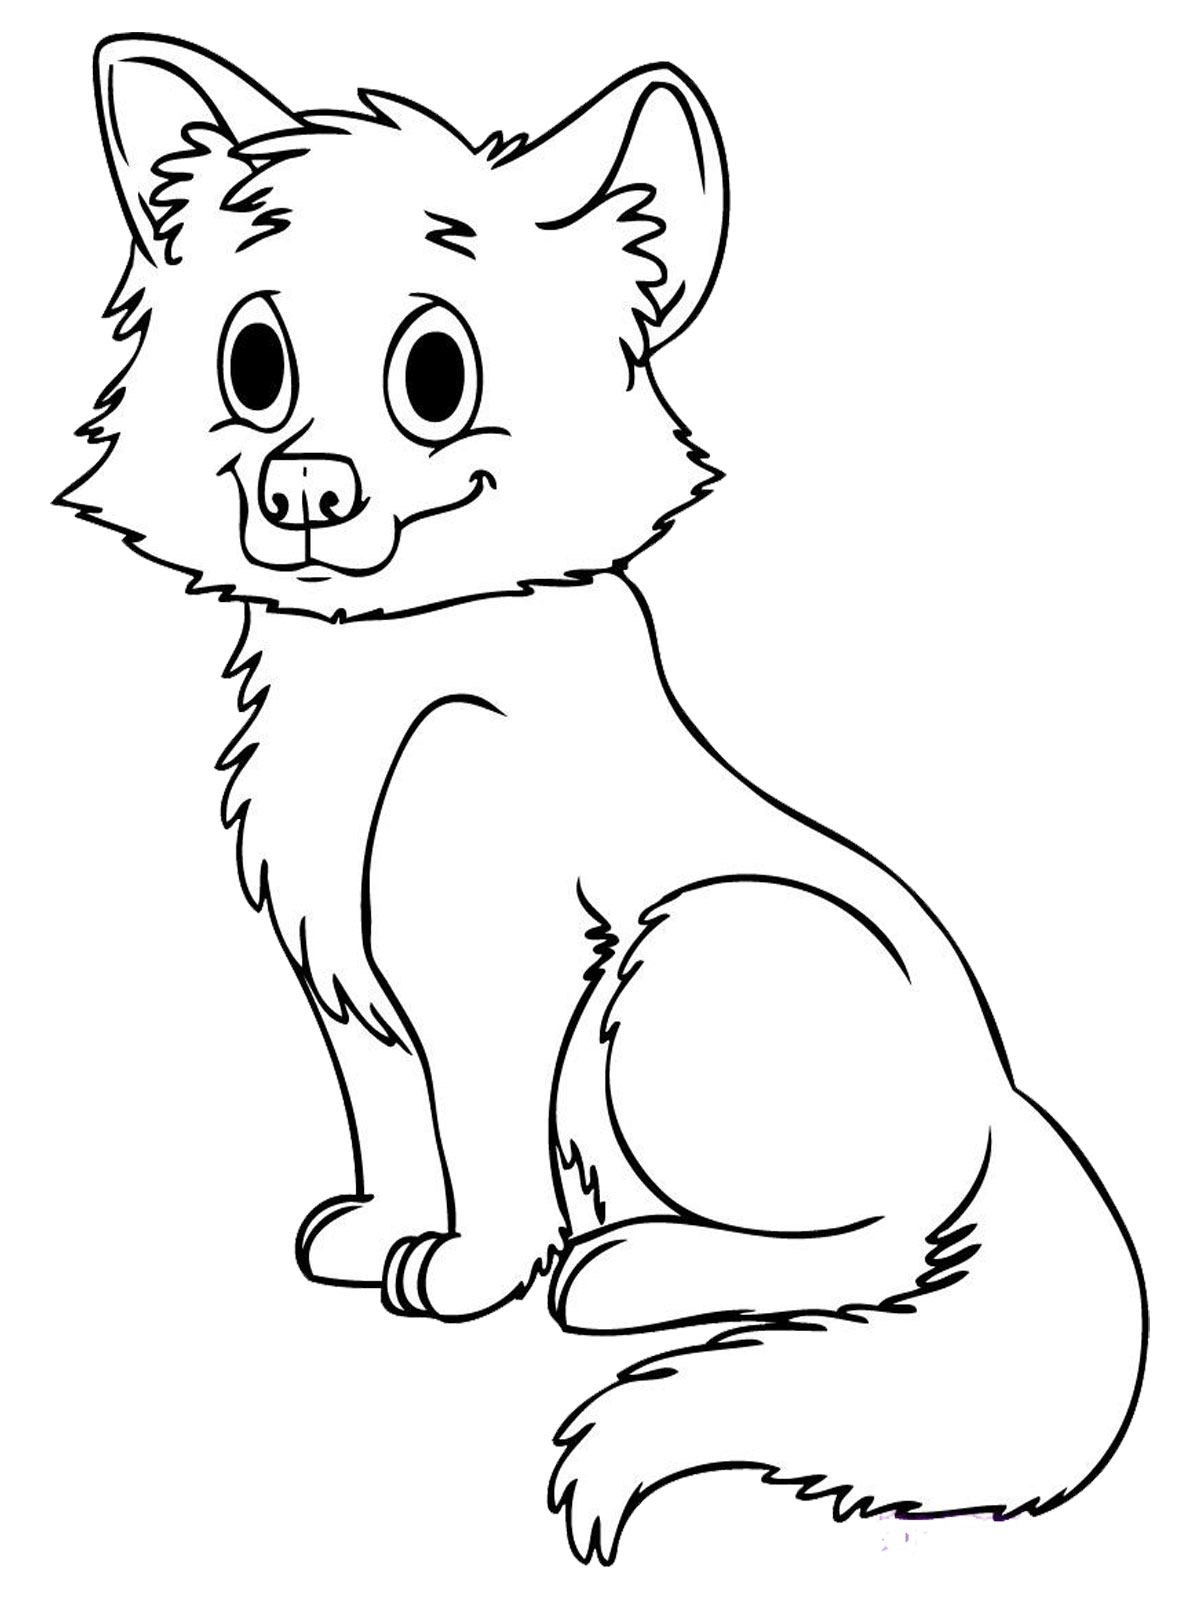 Coloring Pages Animals Realistic : Baby animal coloring pages realistic